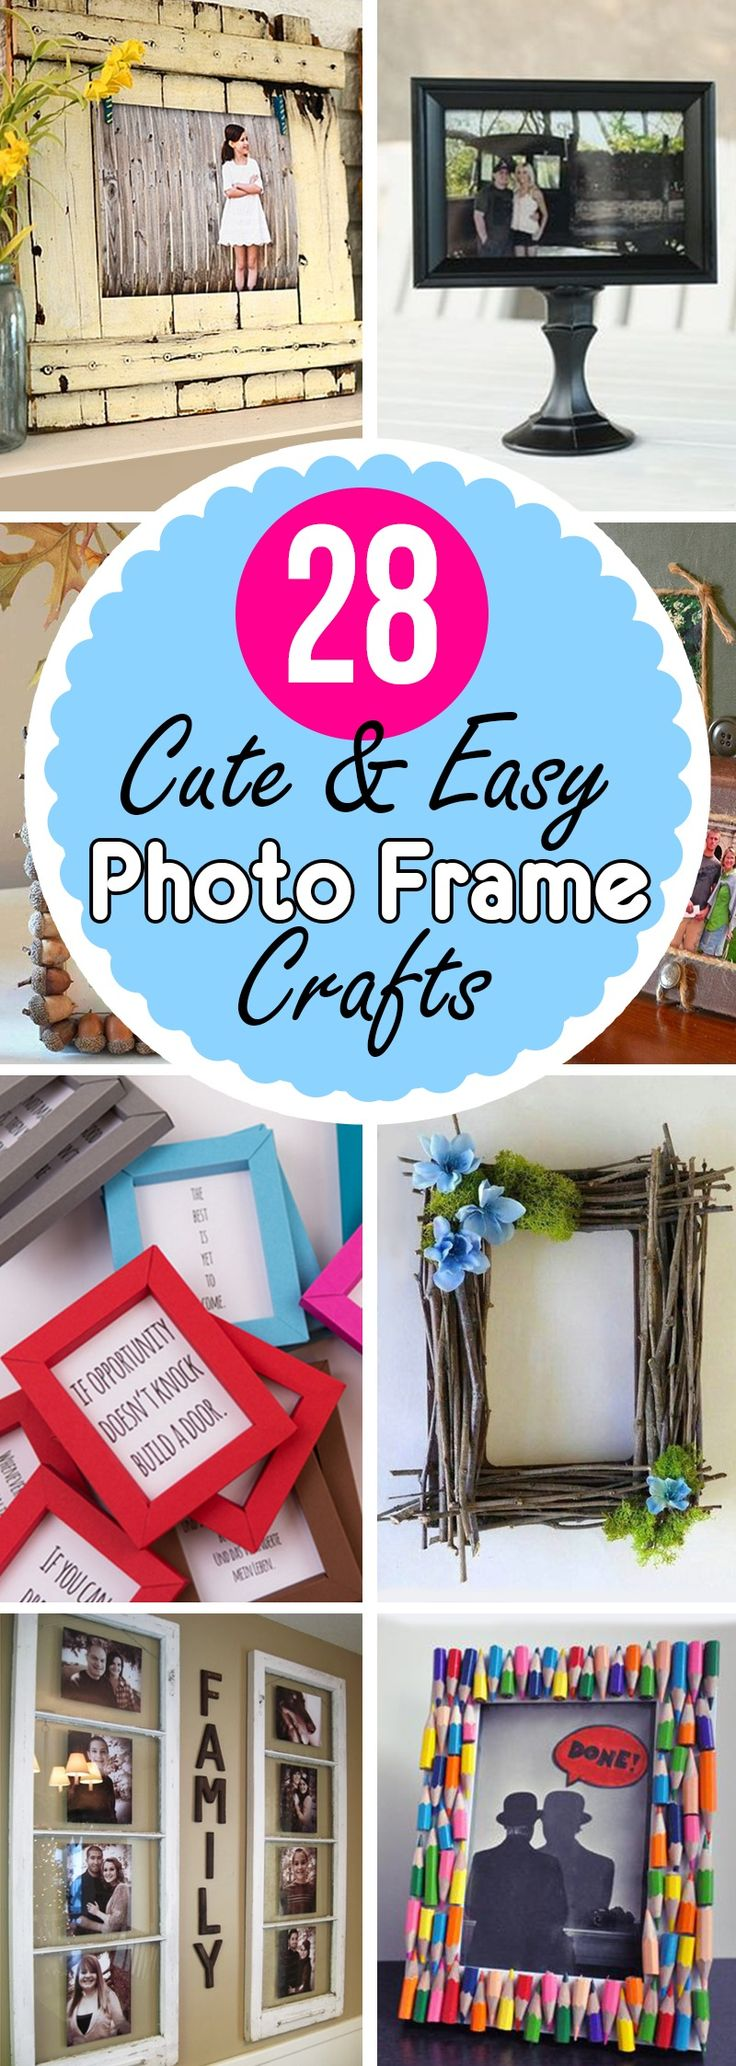 Have you ever looked around your home and thought it needed a makeover? We've all been there, but who has the time and money for a redesign? If your home needs a style update but you're short on time and cash, you can easily transform the look of a room with DIY picture frame crafts. Creating yo...